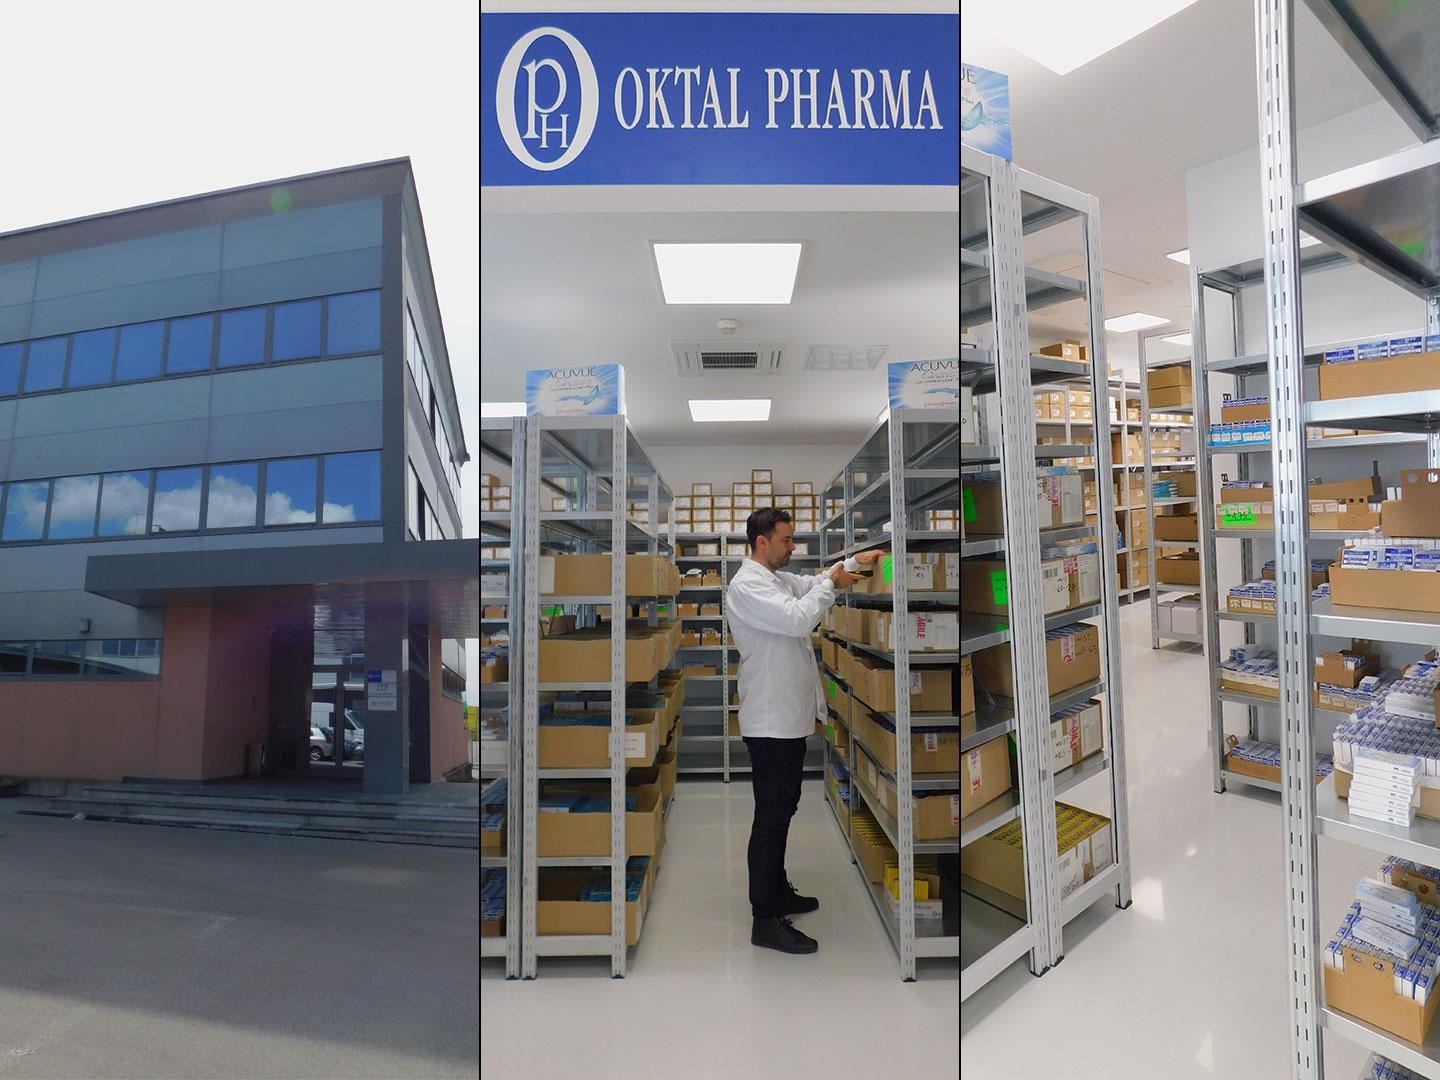 OPH Oktal Pharma d.o.o. Ljubljana renovates storage facilities